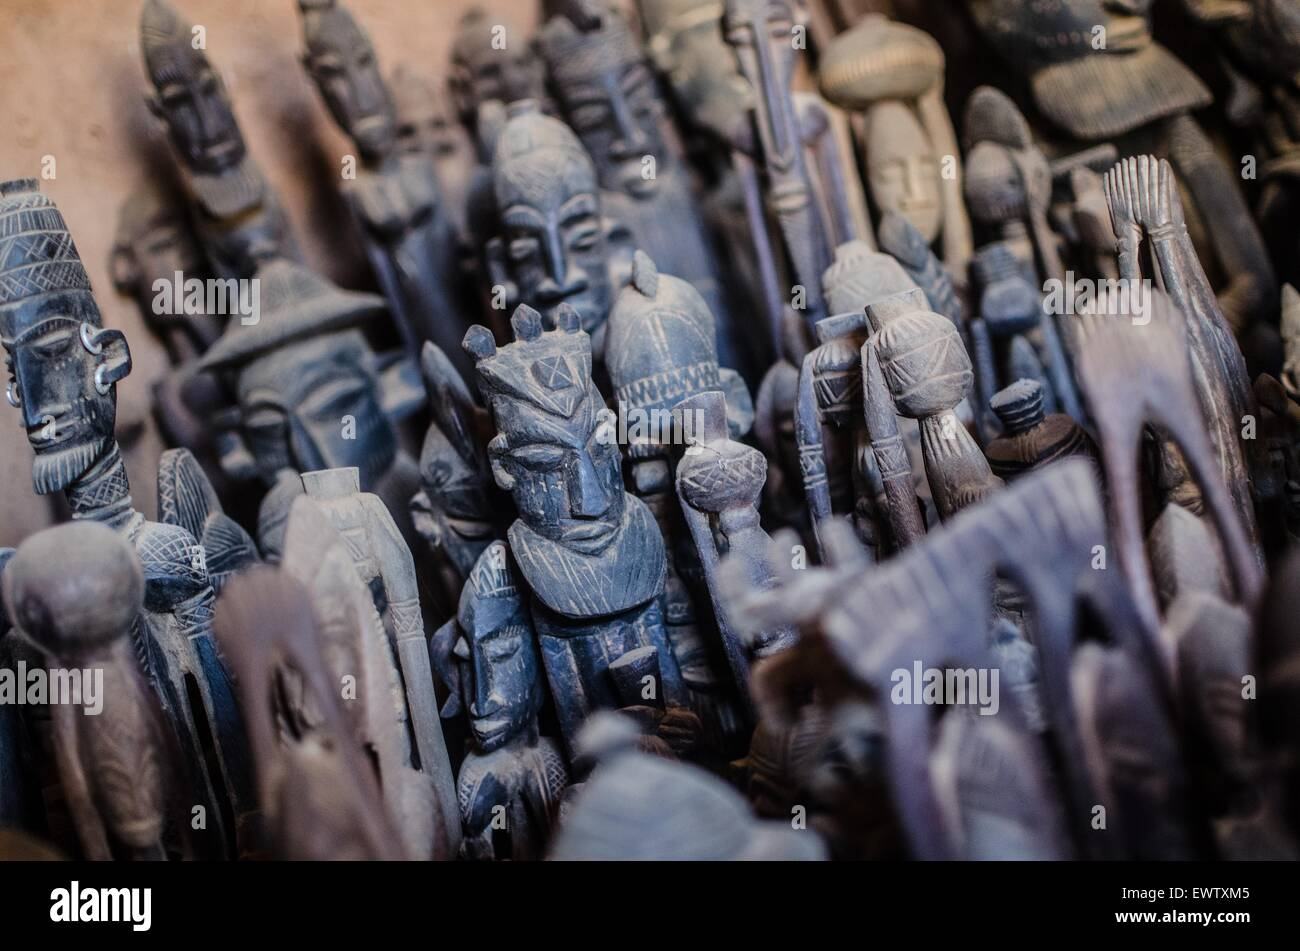 Wooden carvings for sale in Dogon country, Mali. - Stock Image